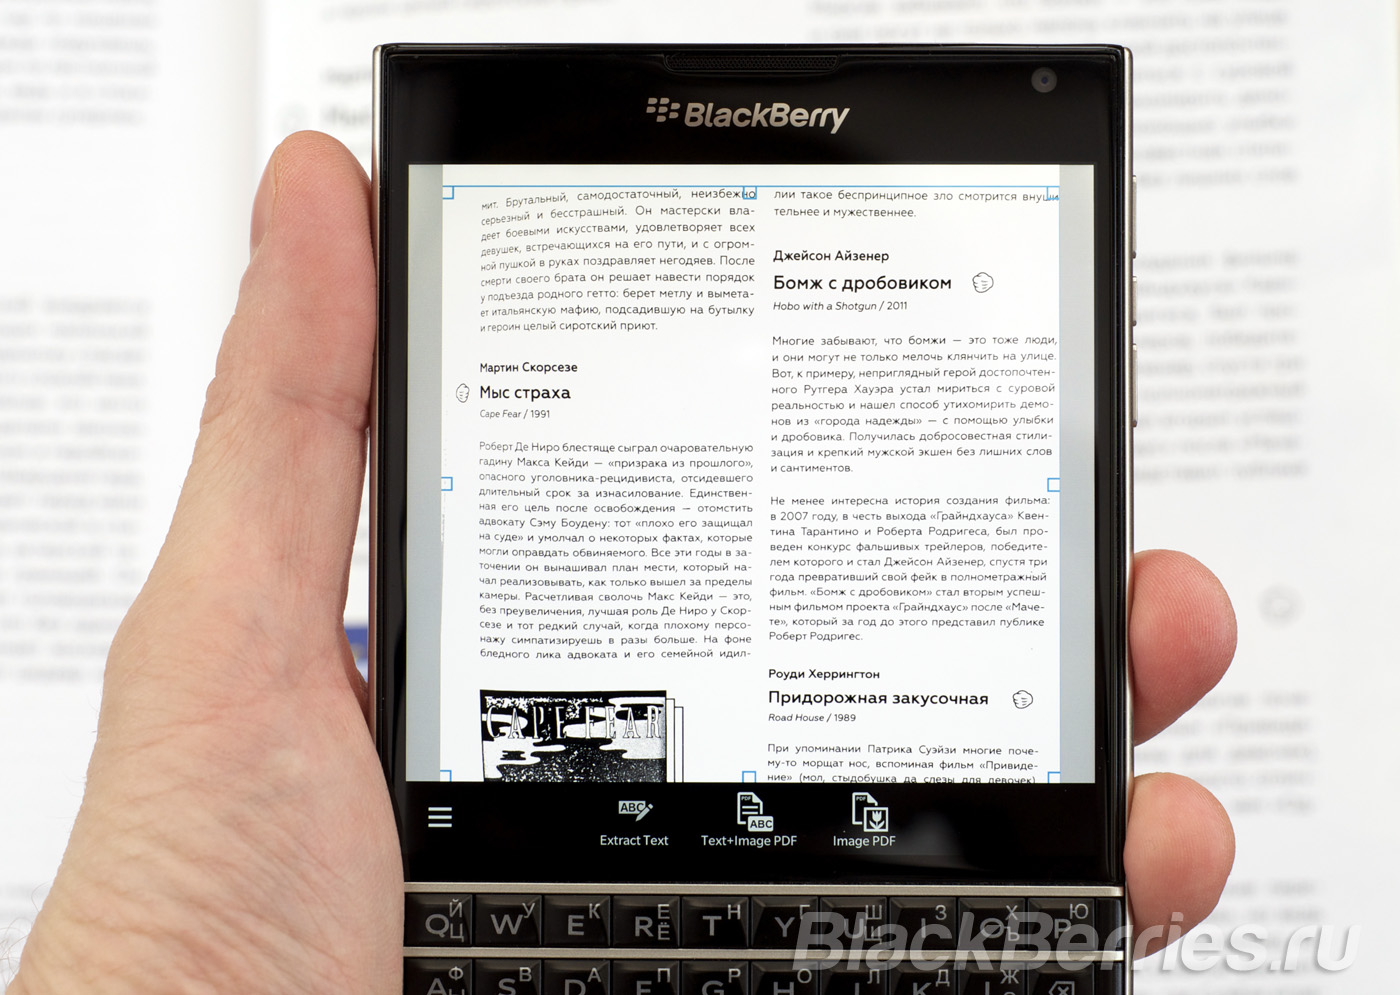 BlackBerry-Passport-Scan